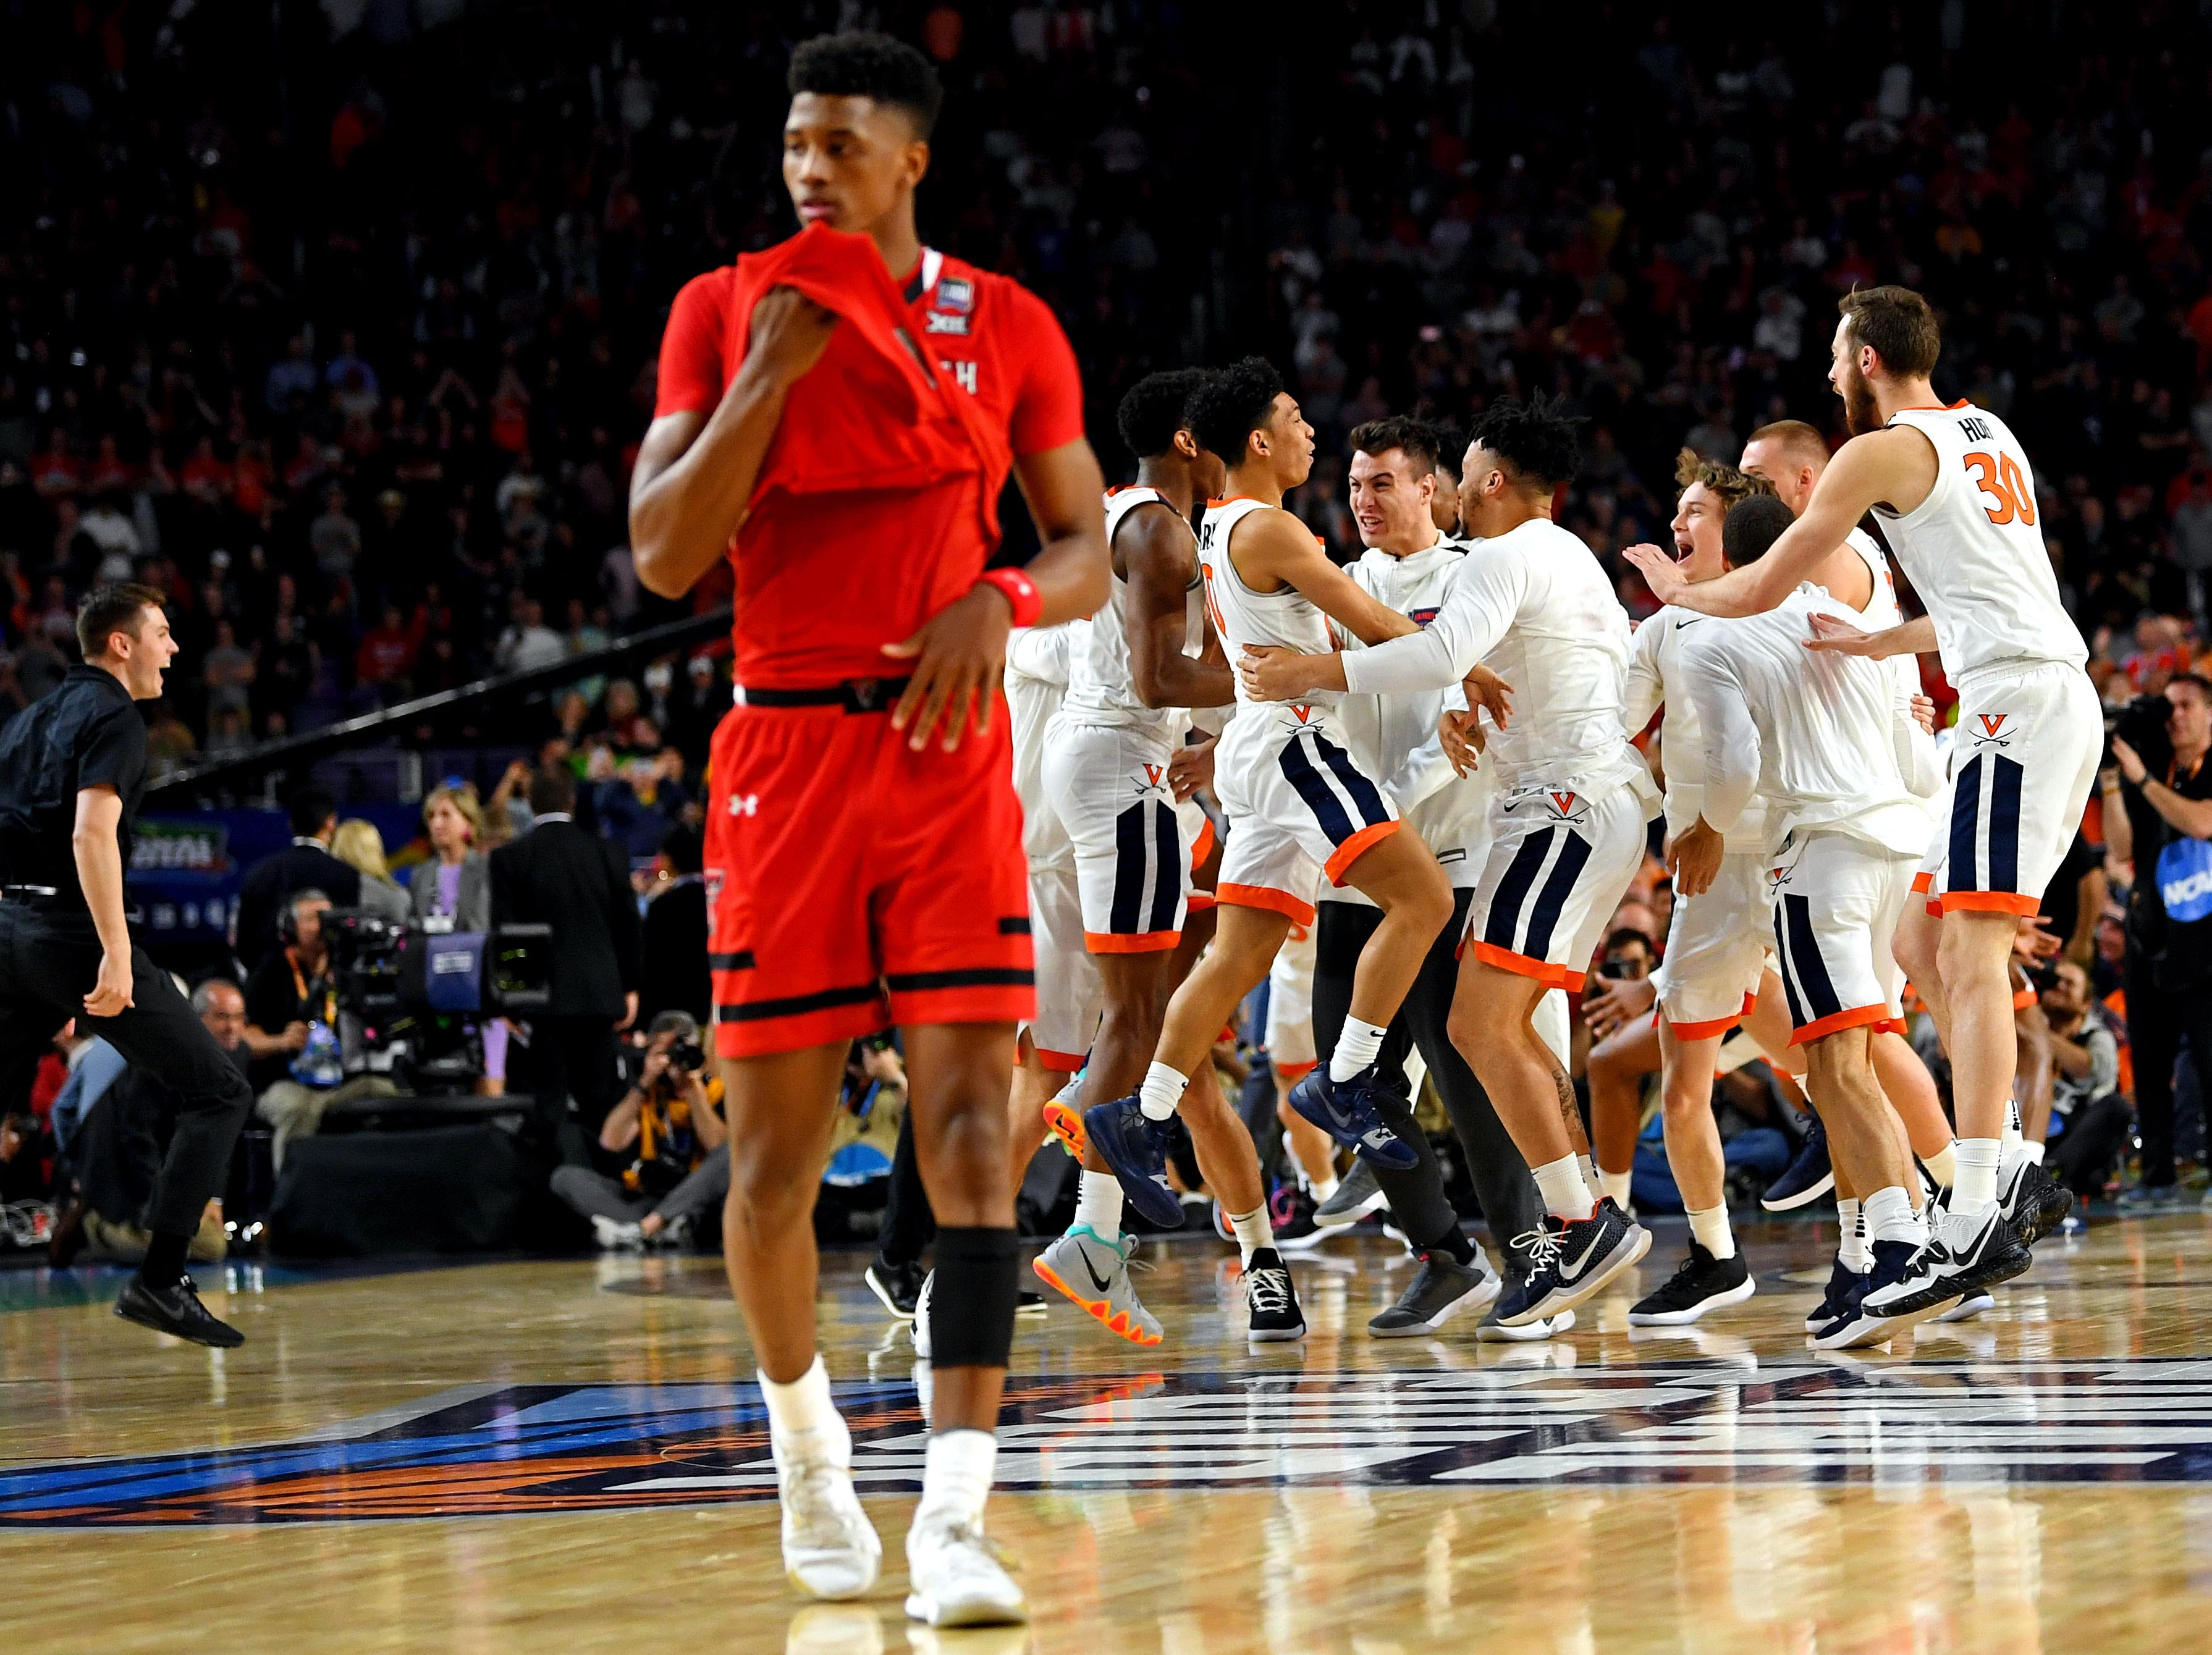 Apr 8, 2019; Minneapolis, MN, USA; The Virginia Cavaliers celebrate beating the Texas Tech Red Raiders in the championship game of the 2019 men's Final Four at US Bank Stadium. Mandatory Credit: Bob Donnan-USA TODAY Sports